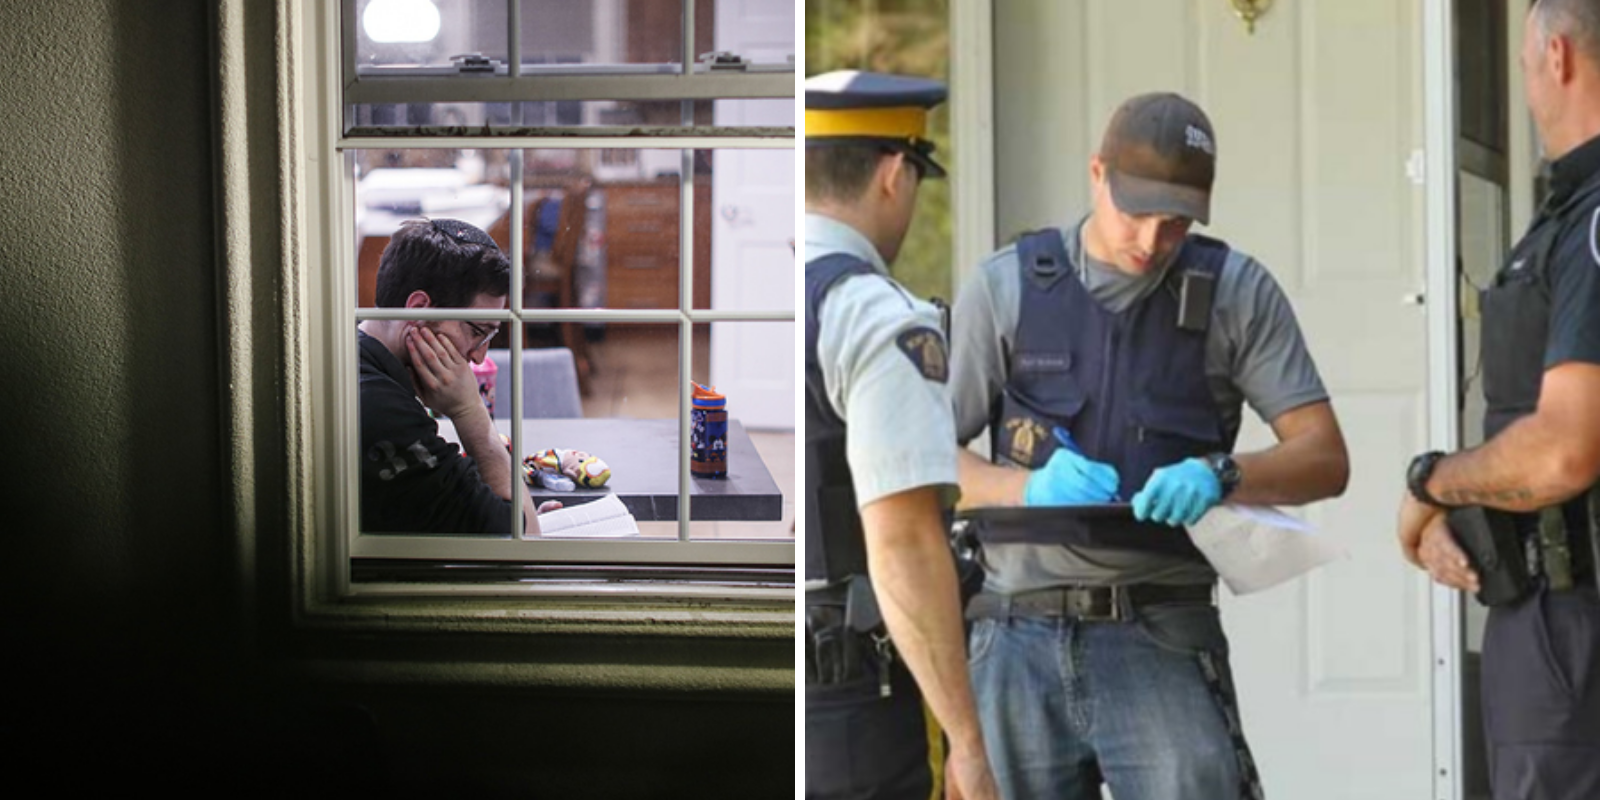 RCMP will be visiting your home to enforce quarantine, fines of up to $1 million possible